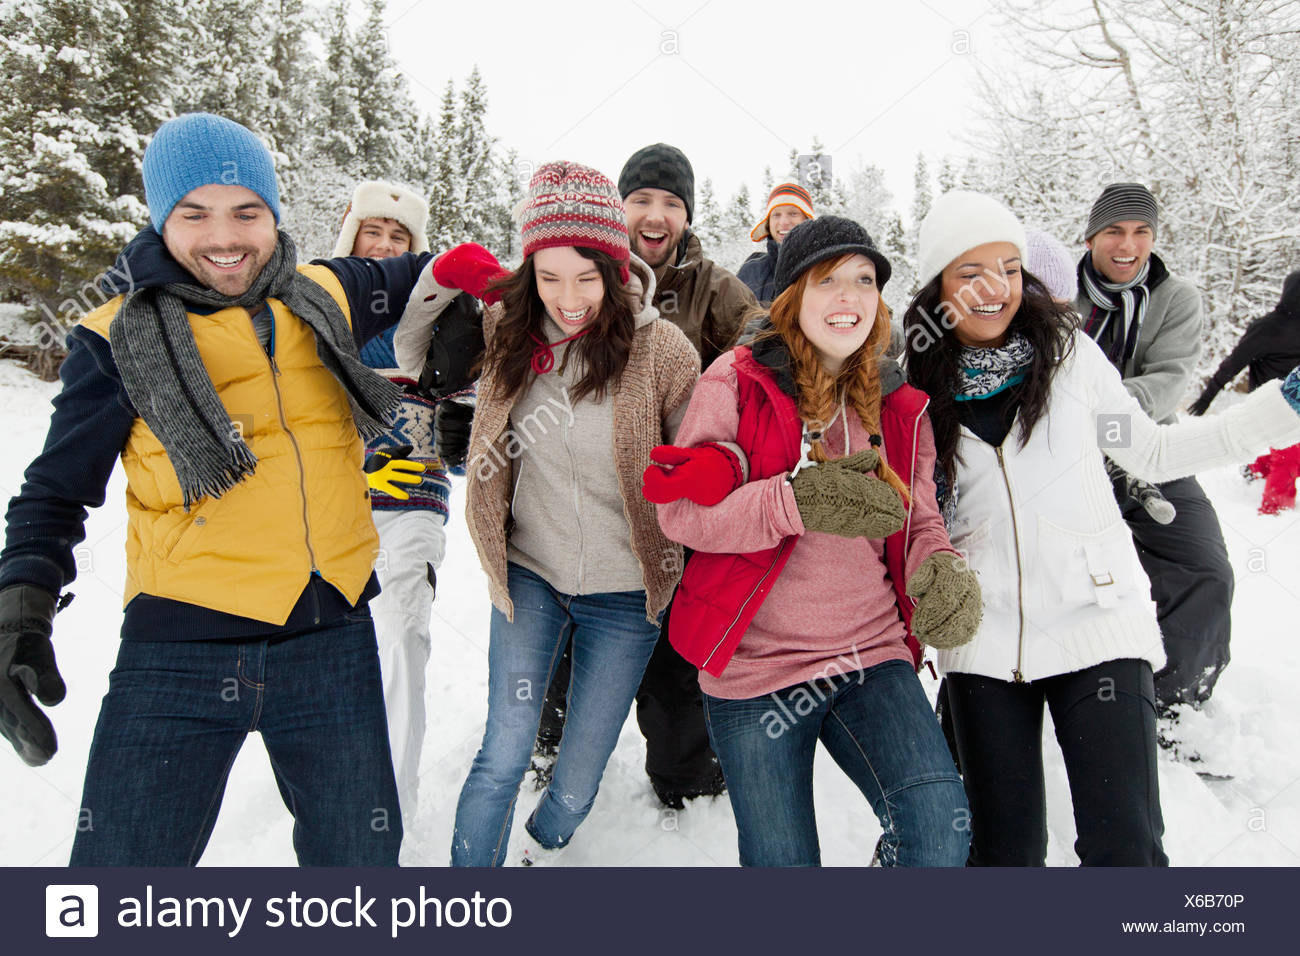 group of adults enjoying the wintery outdoors - Stock Image